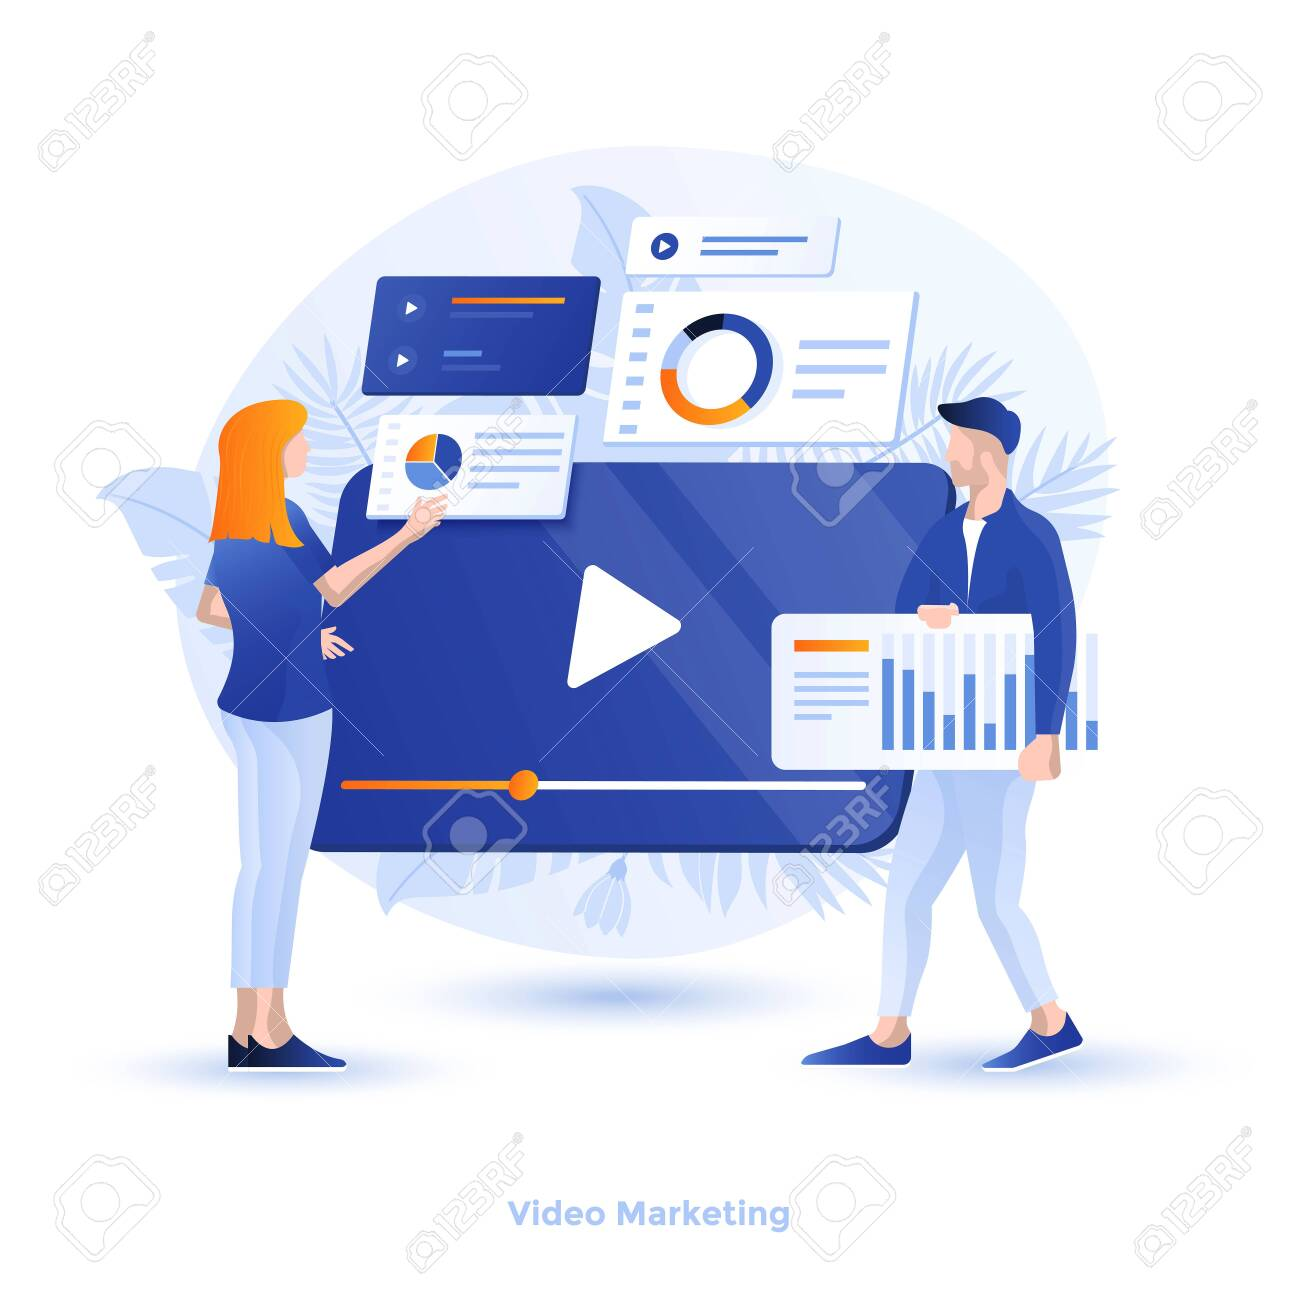 Modern flat design illustration of Video Marketing. Can be used for website and mobile website or Landing page. Easy to edit and customize. Vector illustration - 134806561